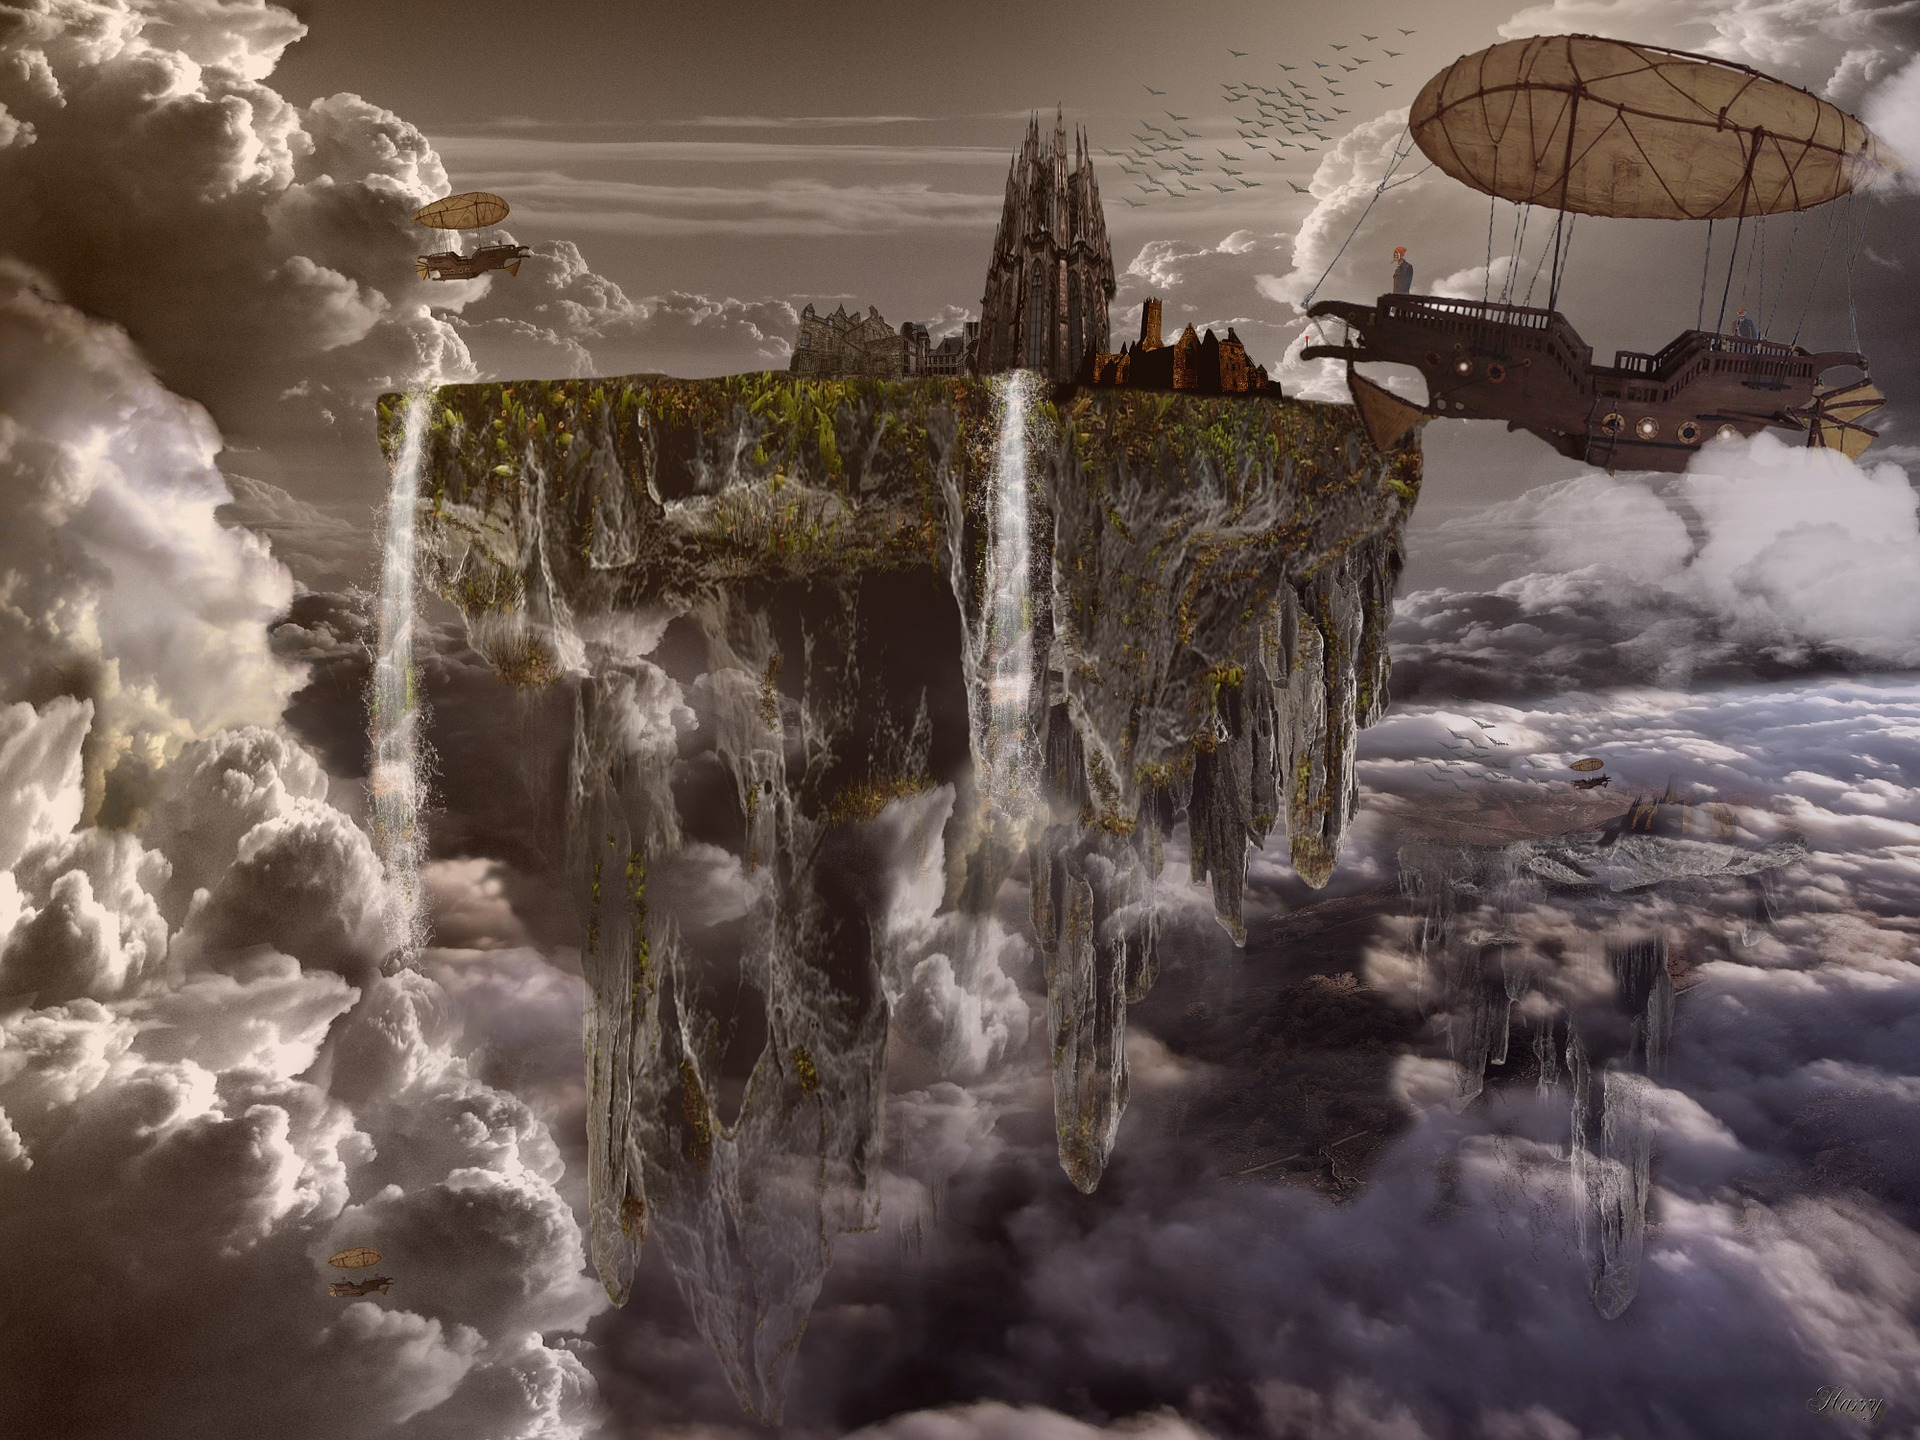 City on piece of land positioned in the air and surrounded by clouds. Steam-punk-style airship to the right